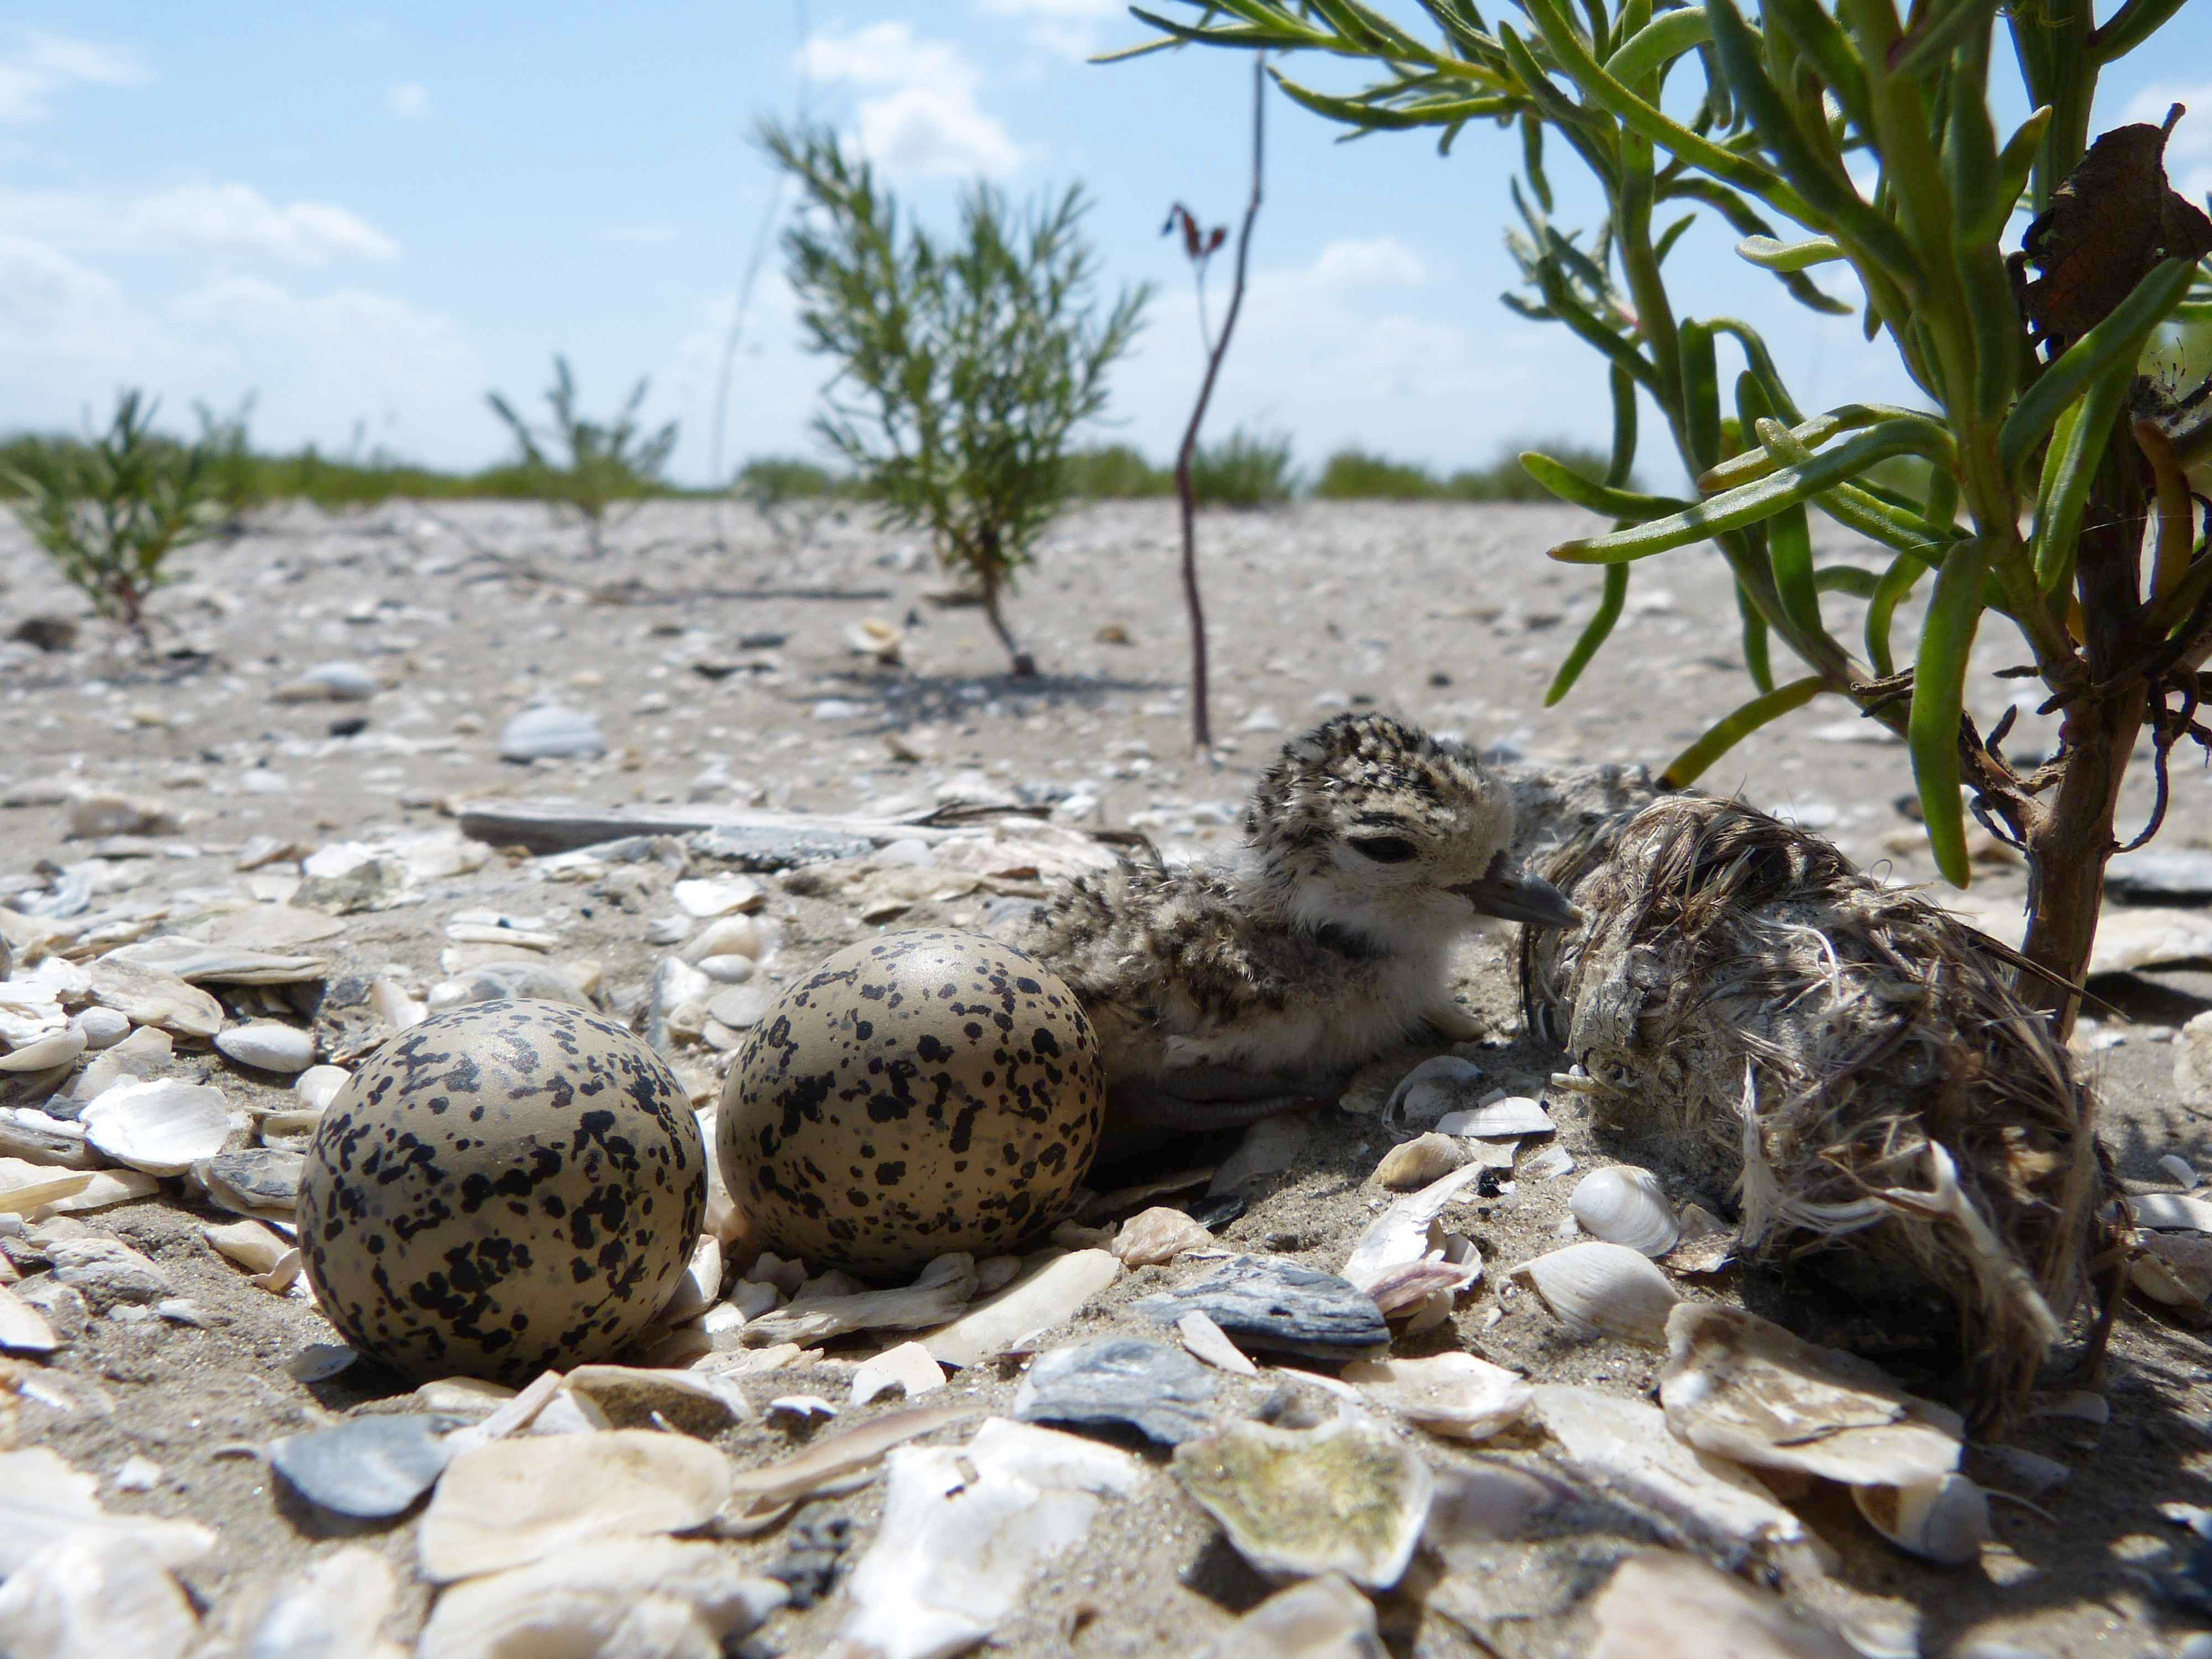 Wilson's Plover nest with a newly hatched chick! Aww! Photo credit Delaina LeBlanc.